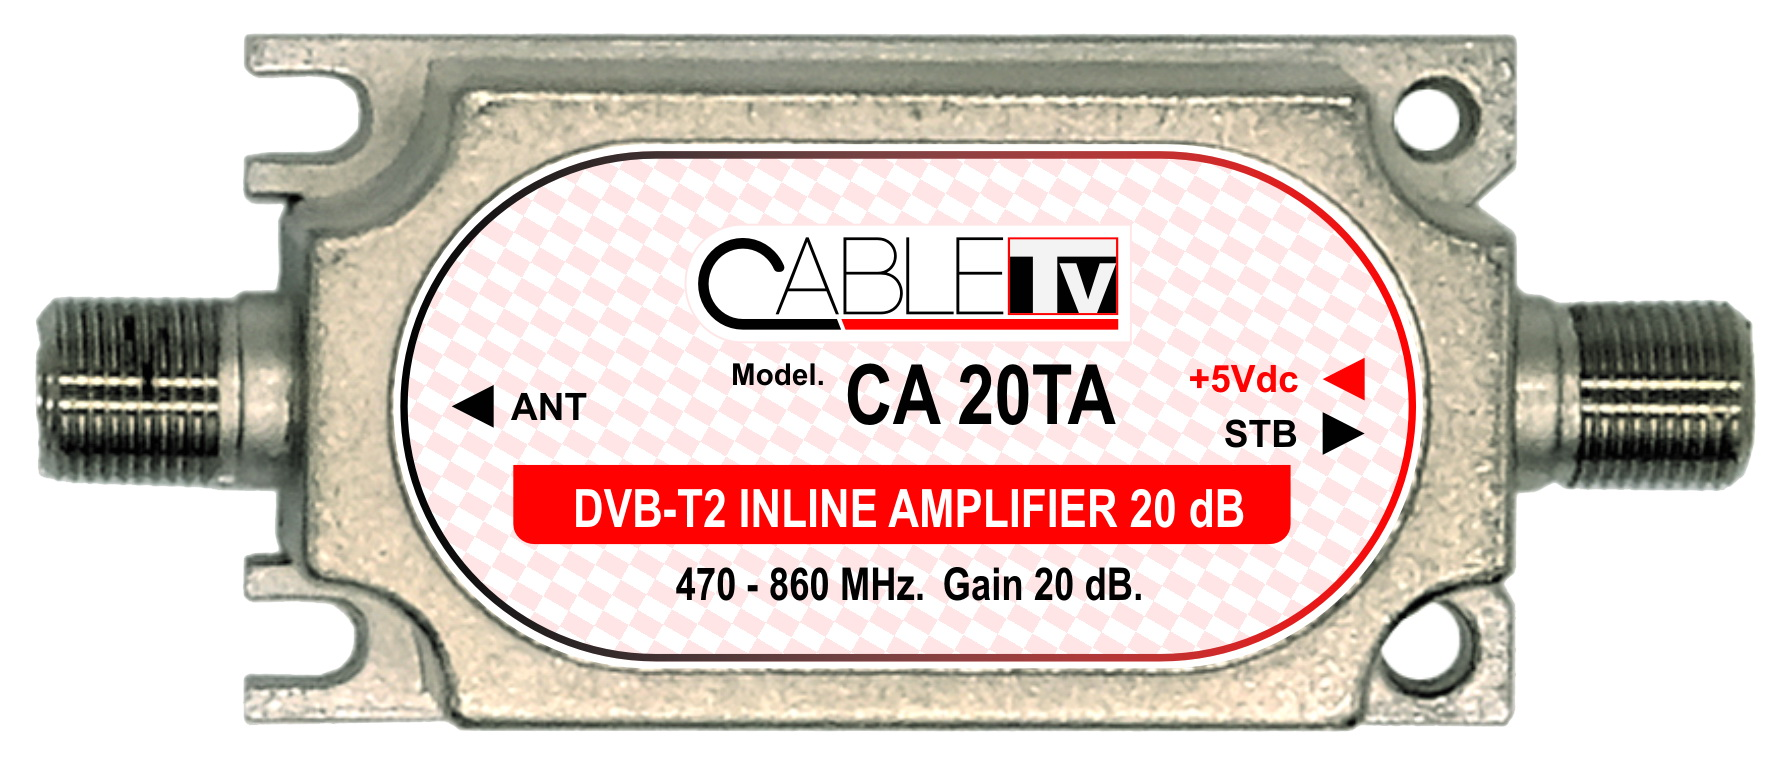 Line Digital Ampiifier 20dB CABLE